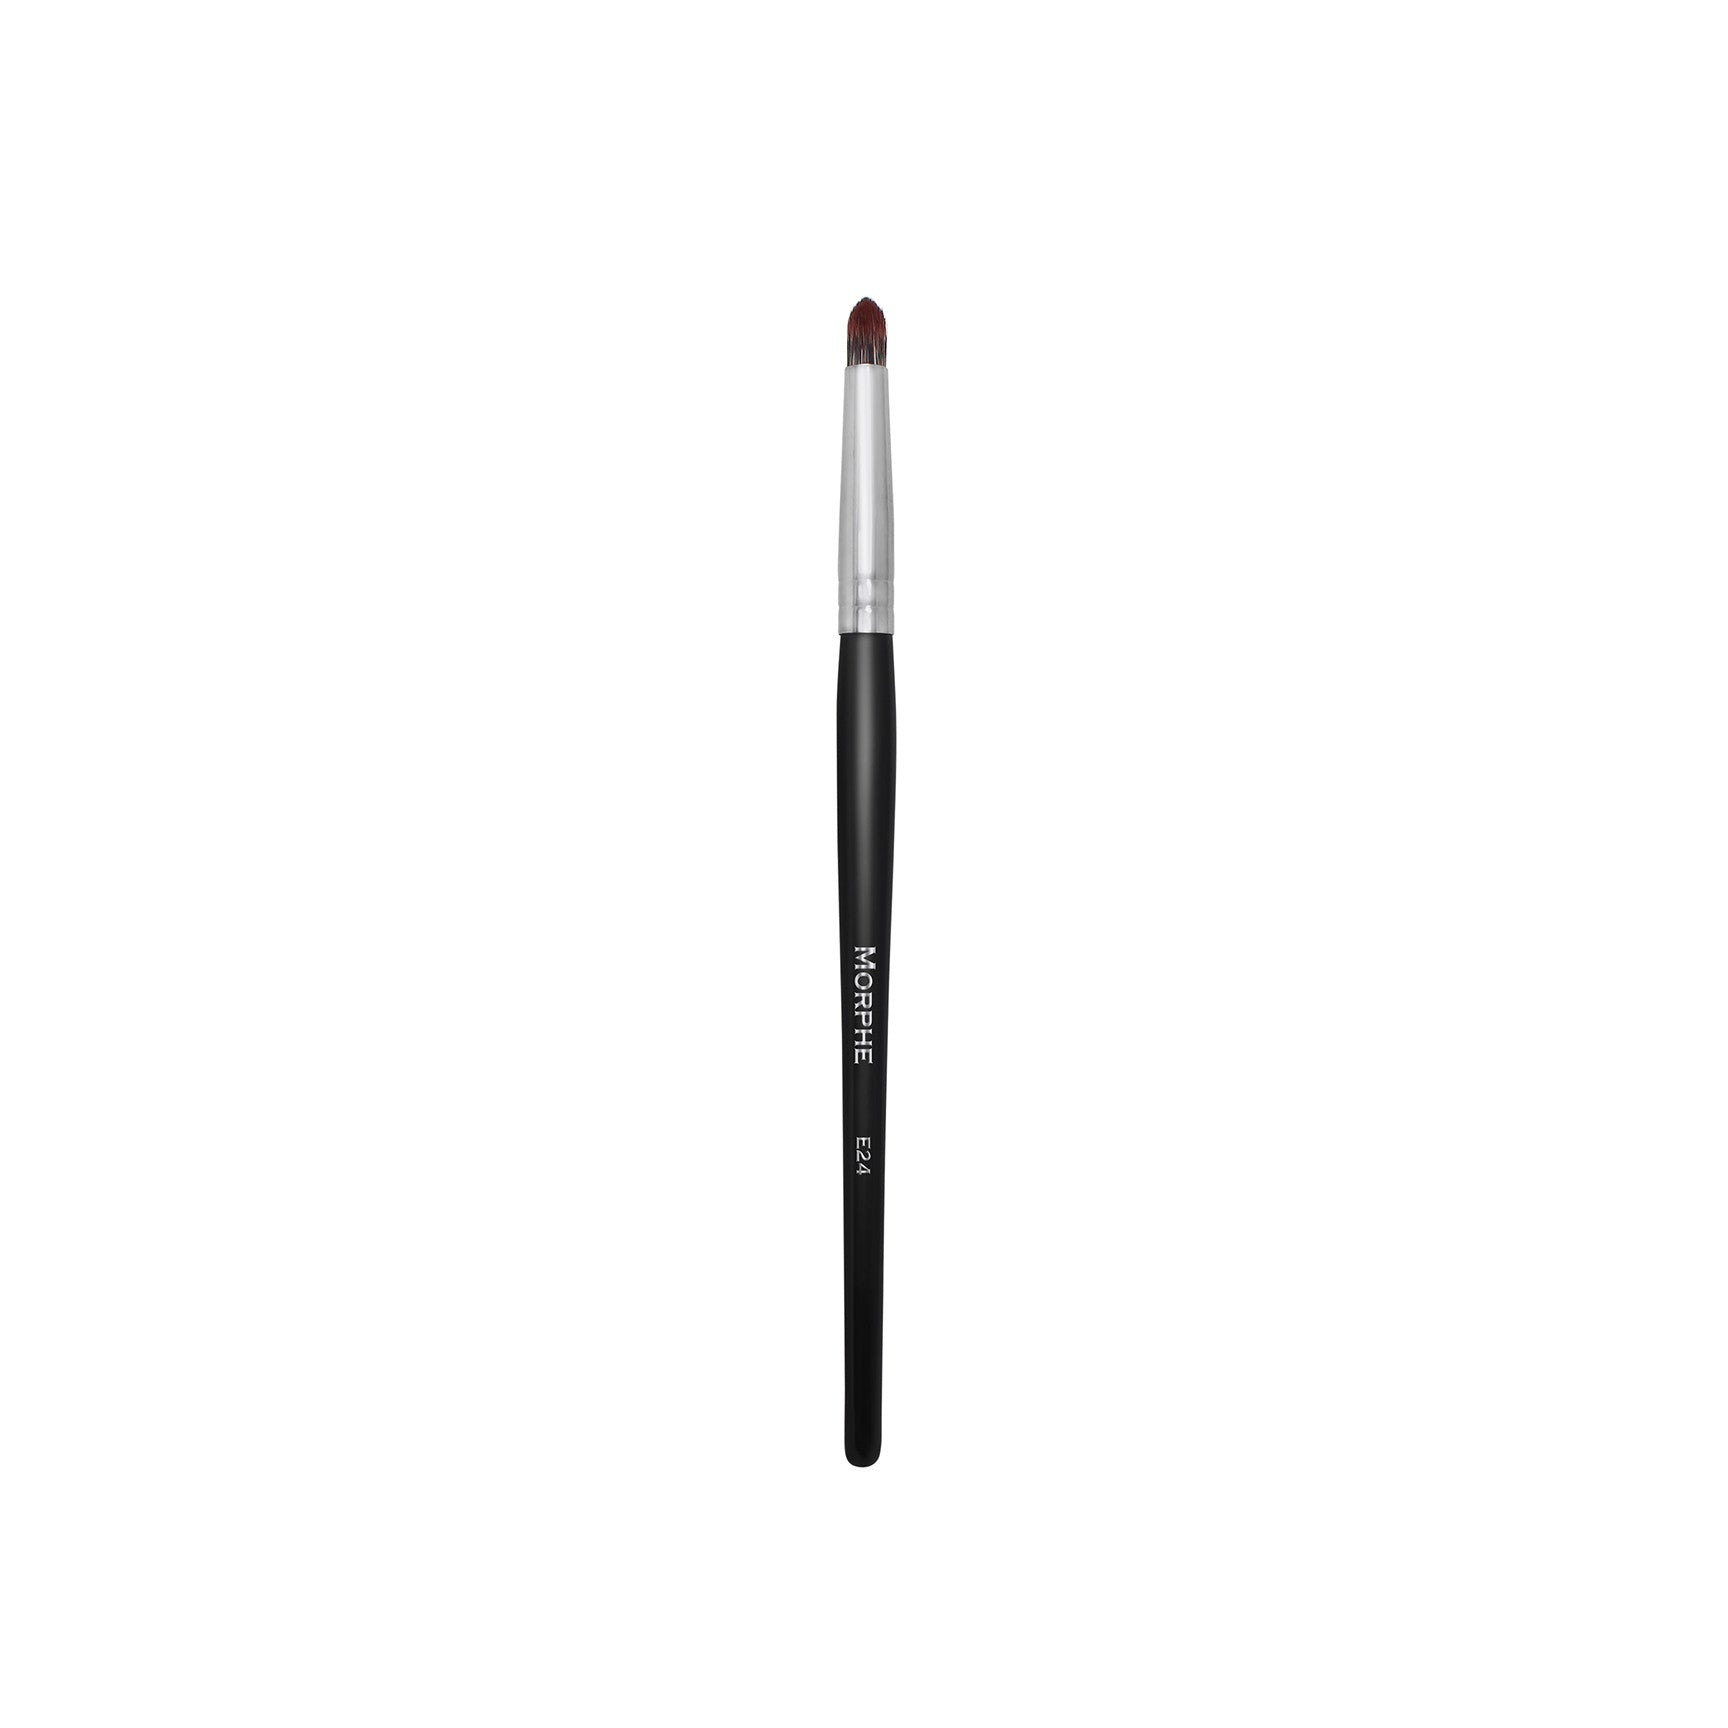 Elite series morphe us e24 bullet crease fandeluxe Choice Image